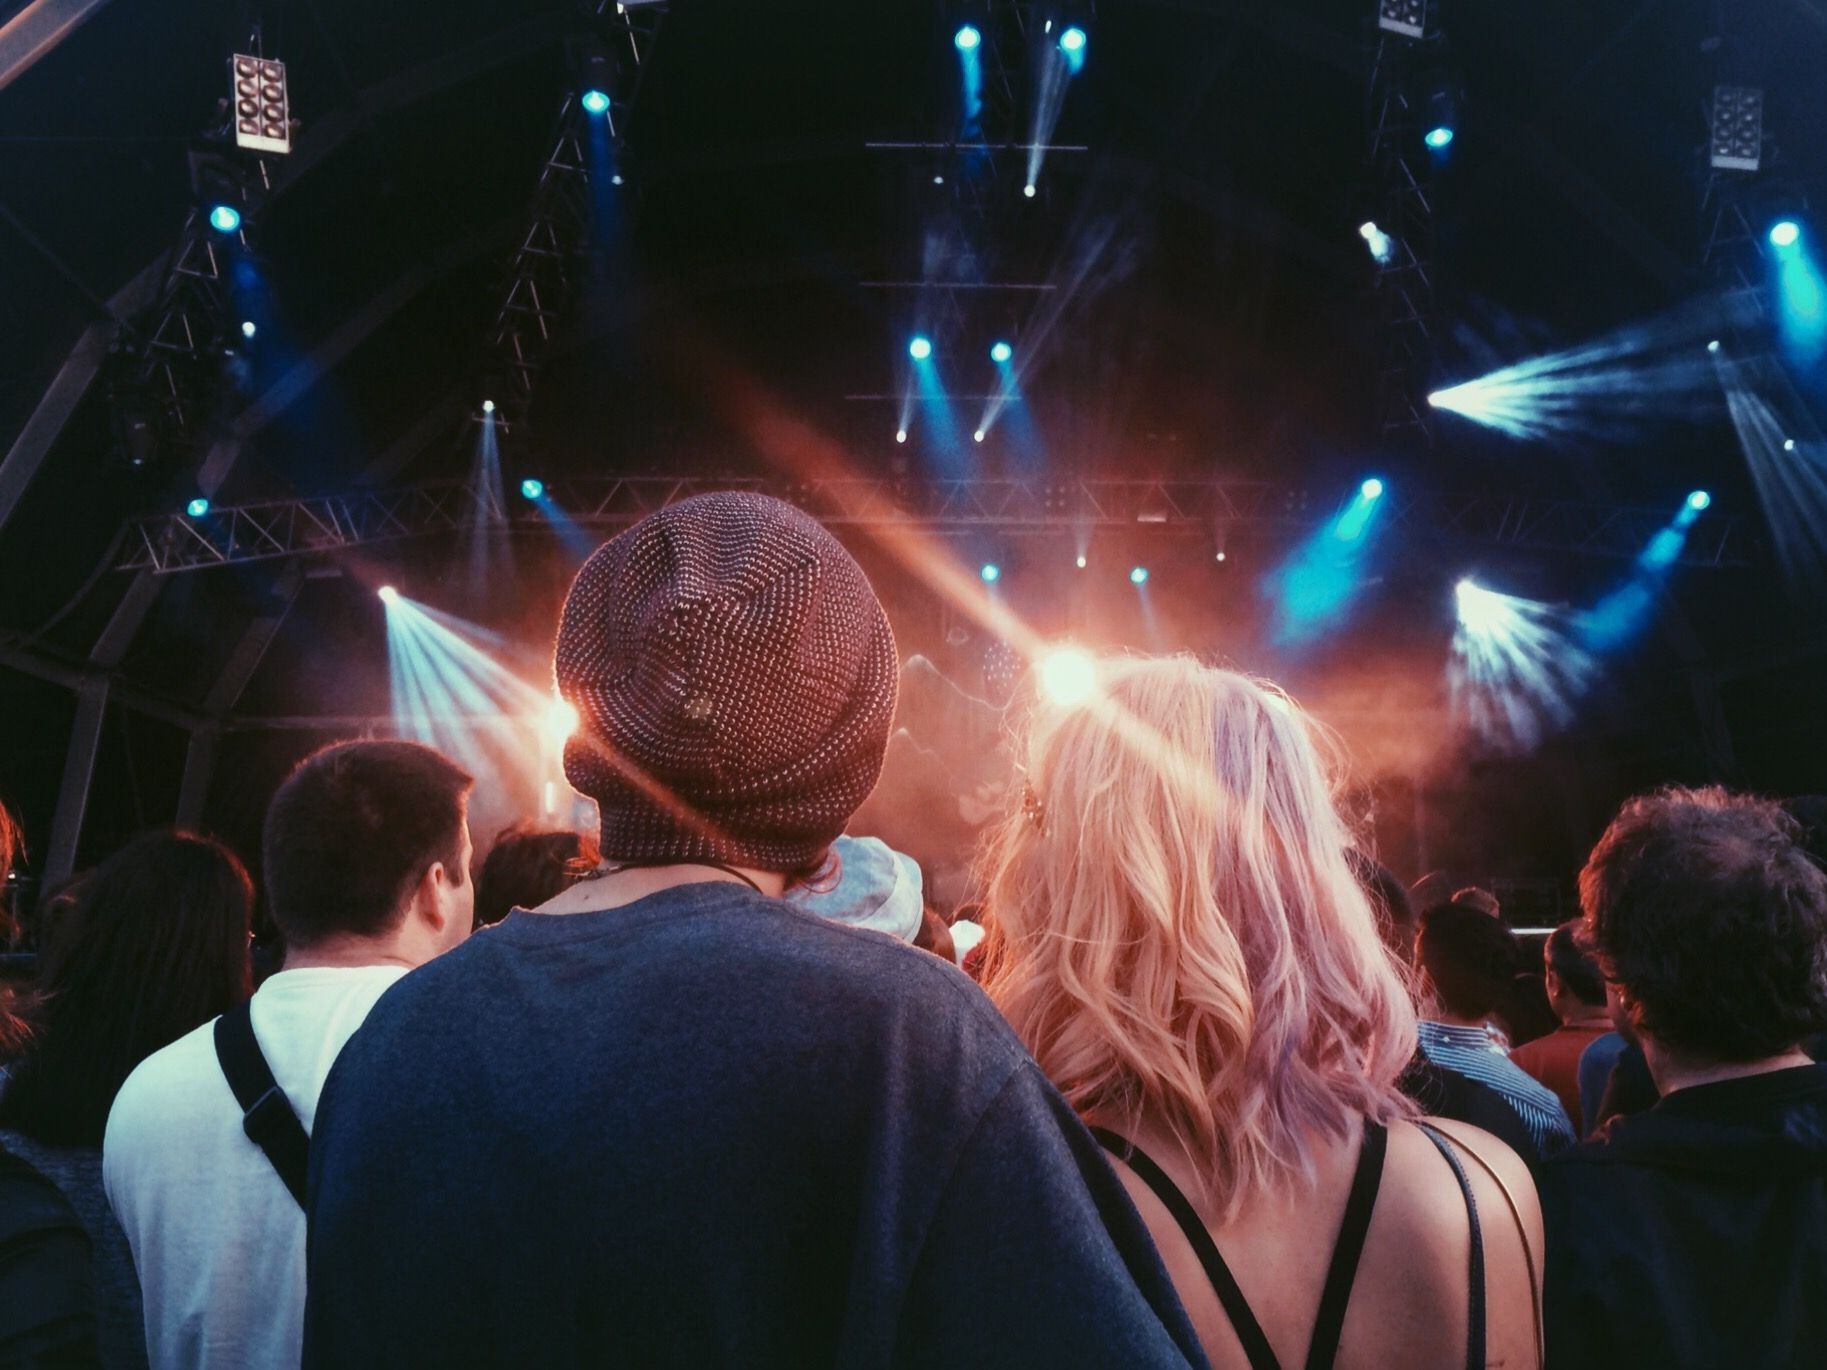 Rear View Of People At Illuminated Music Concert